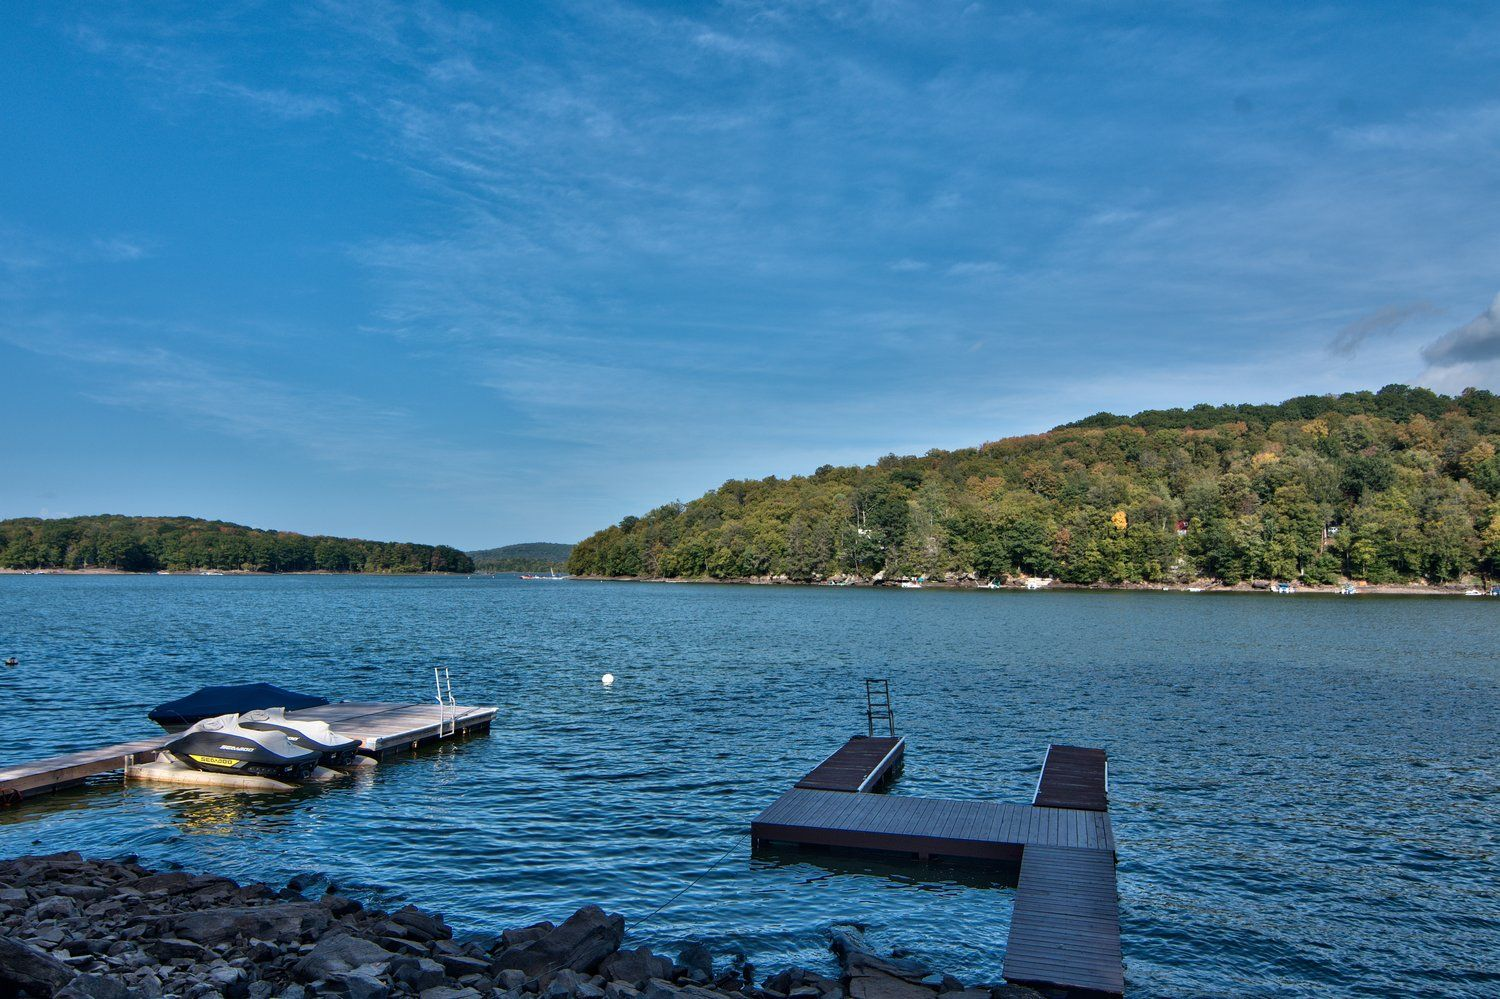 Bring your boat or rent one for your vacation in lake